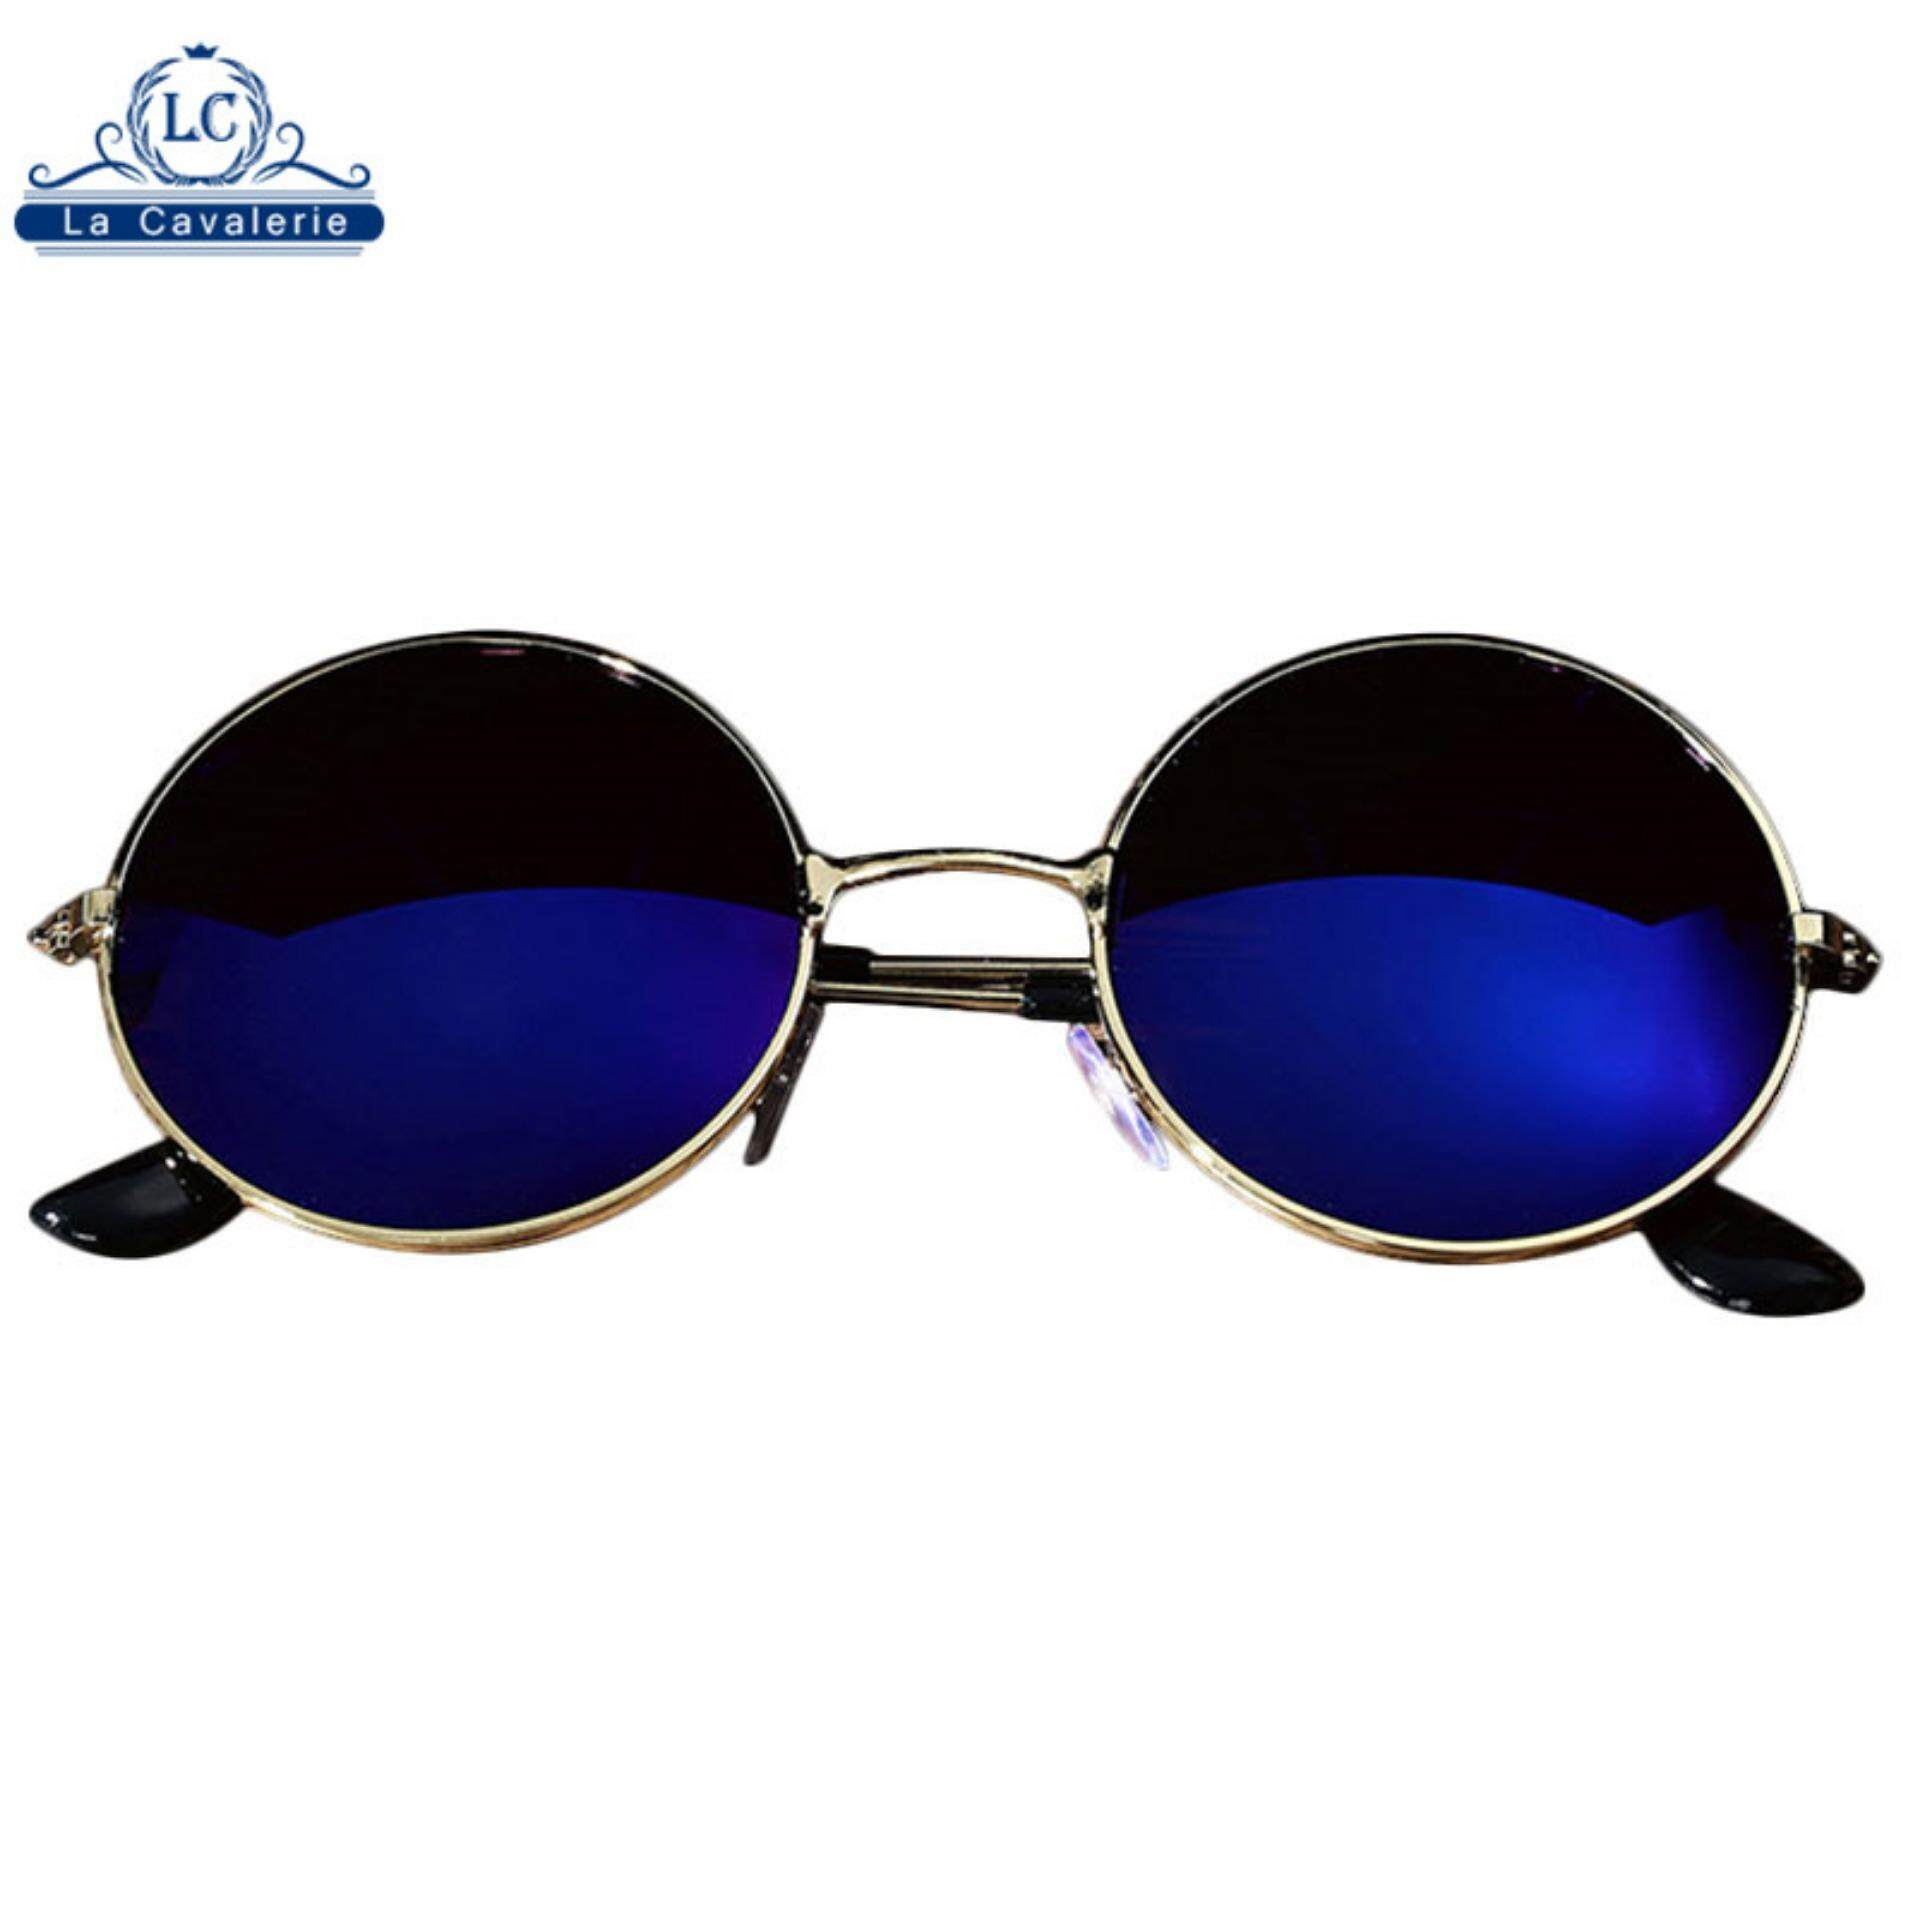 588a7e99af Cool and fashionable Men Women Retro Vintage Round Mirrored Sunglasses  Eyewear Outdoor Glasses